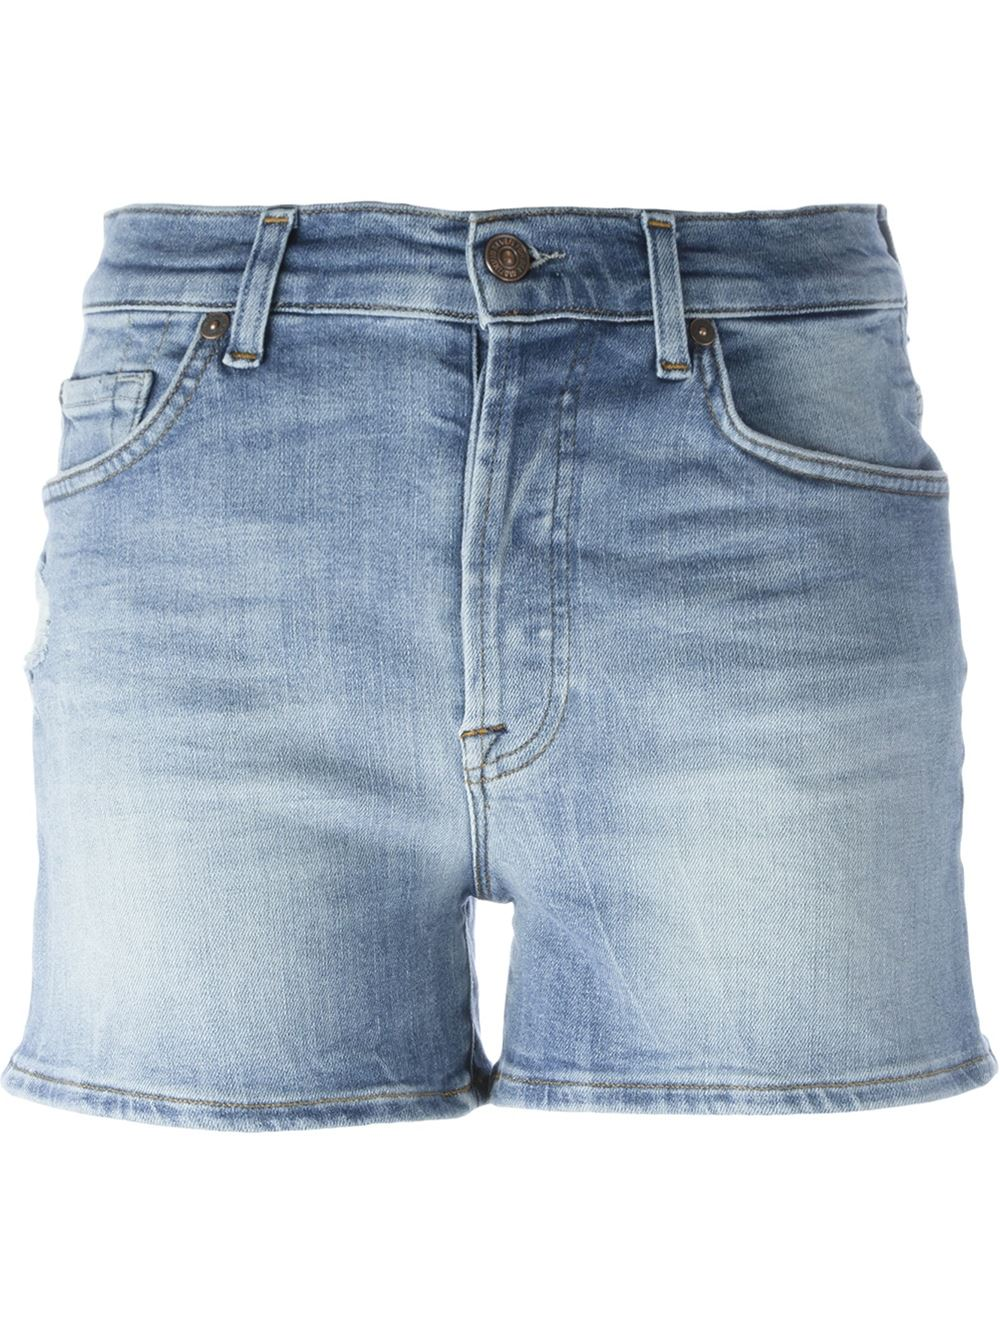 7 For All Mankind SHORTS RAW CUT